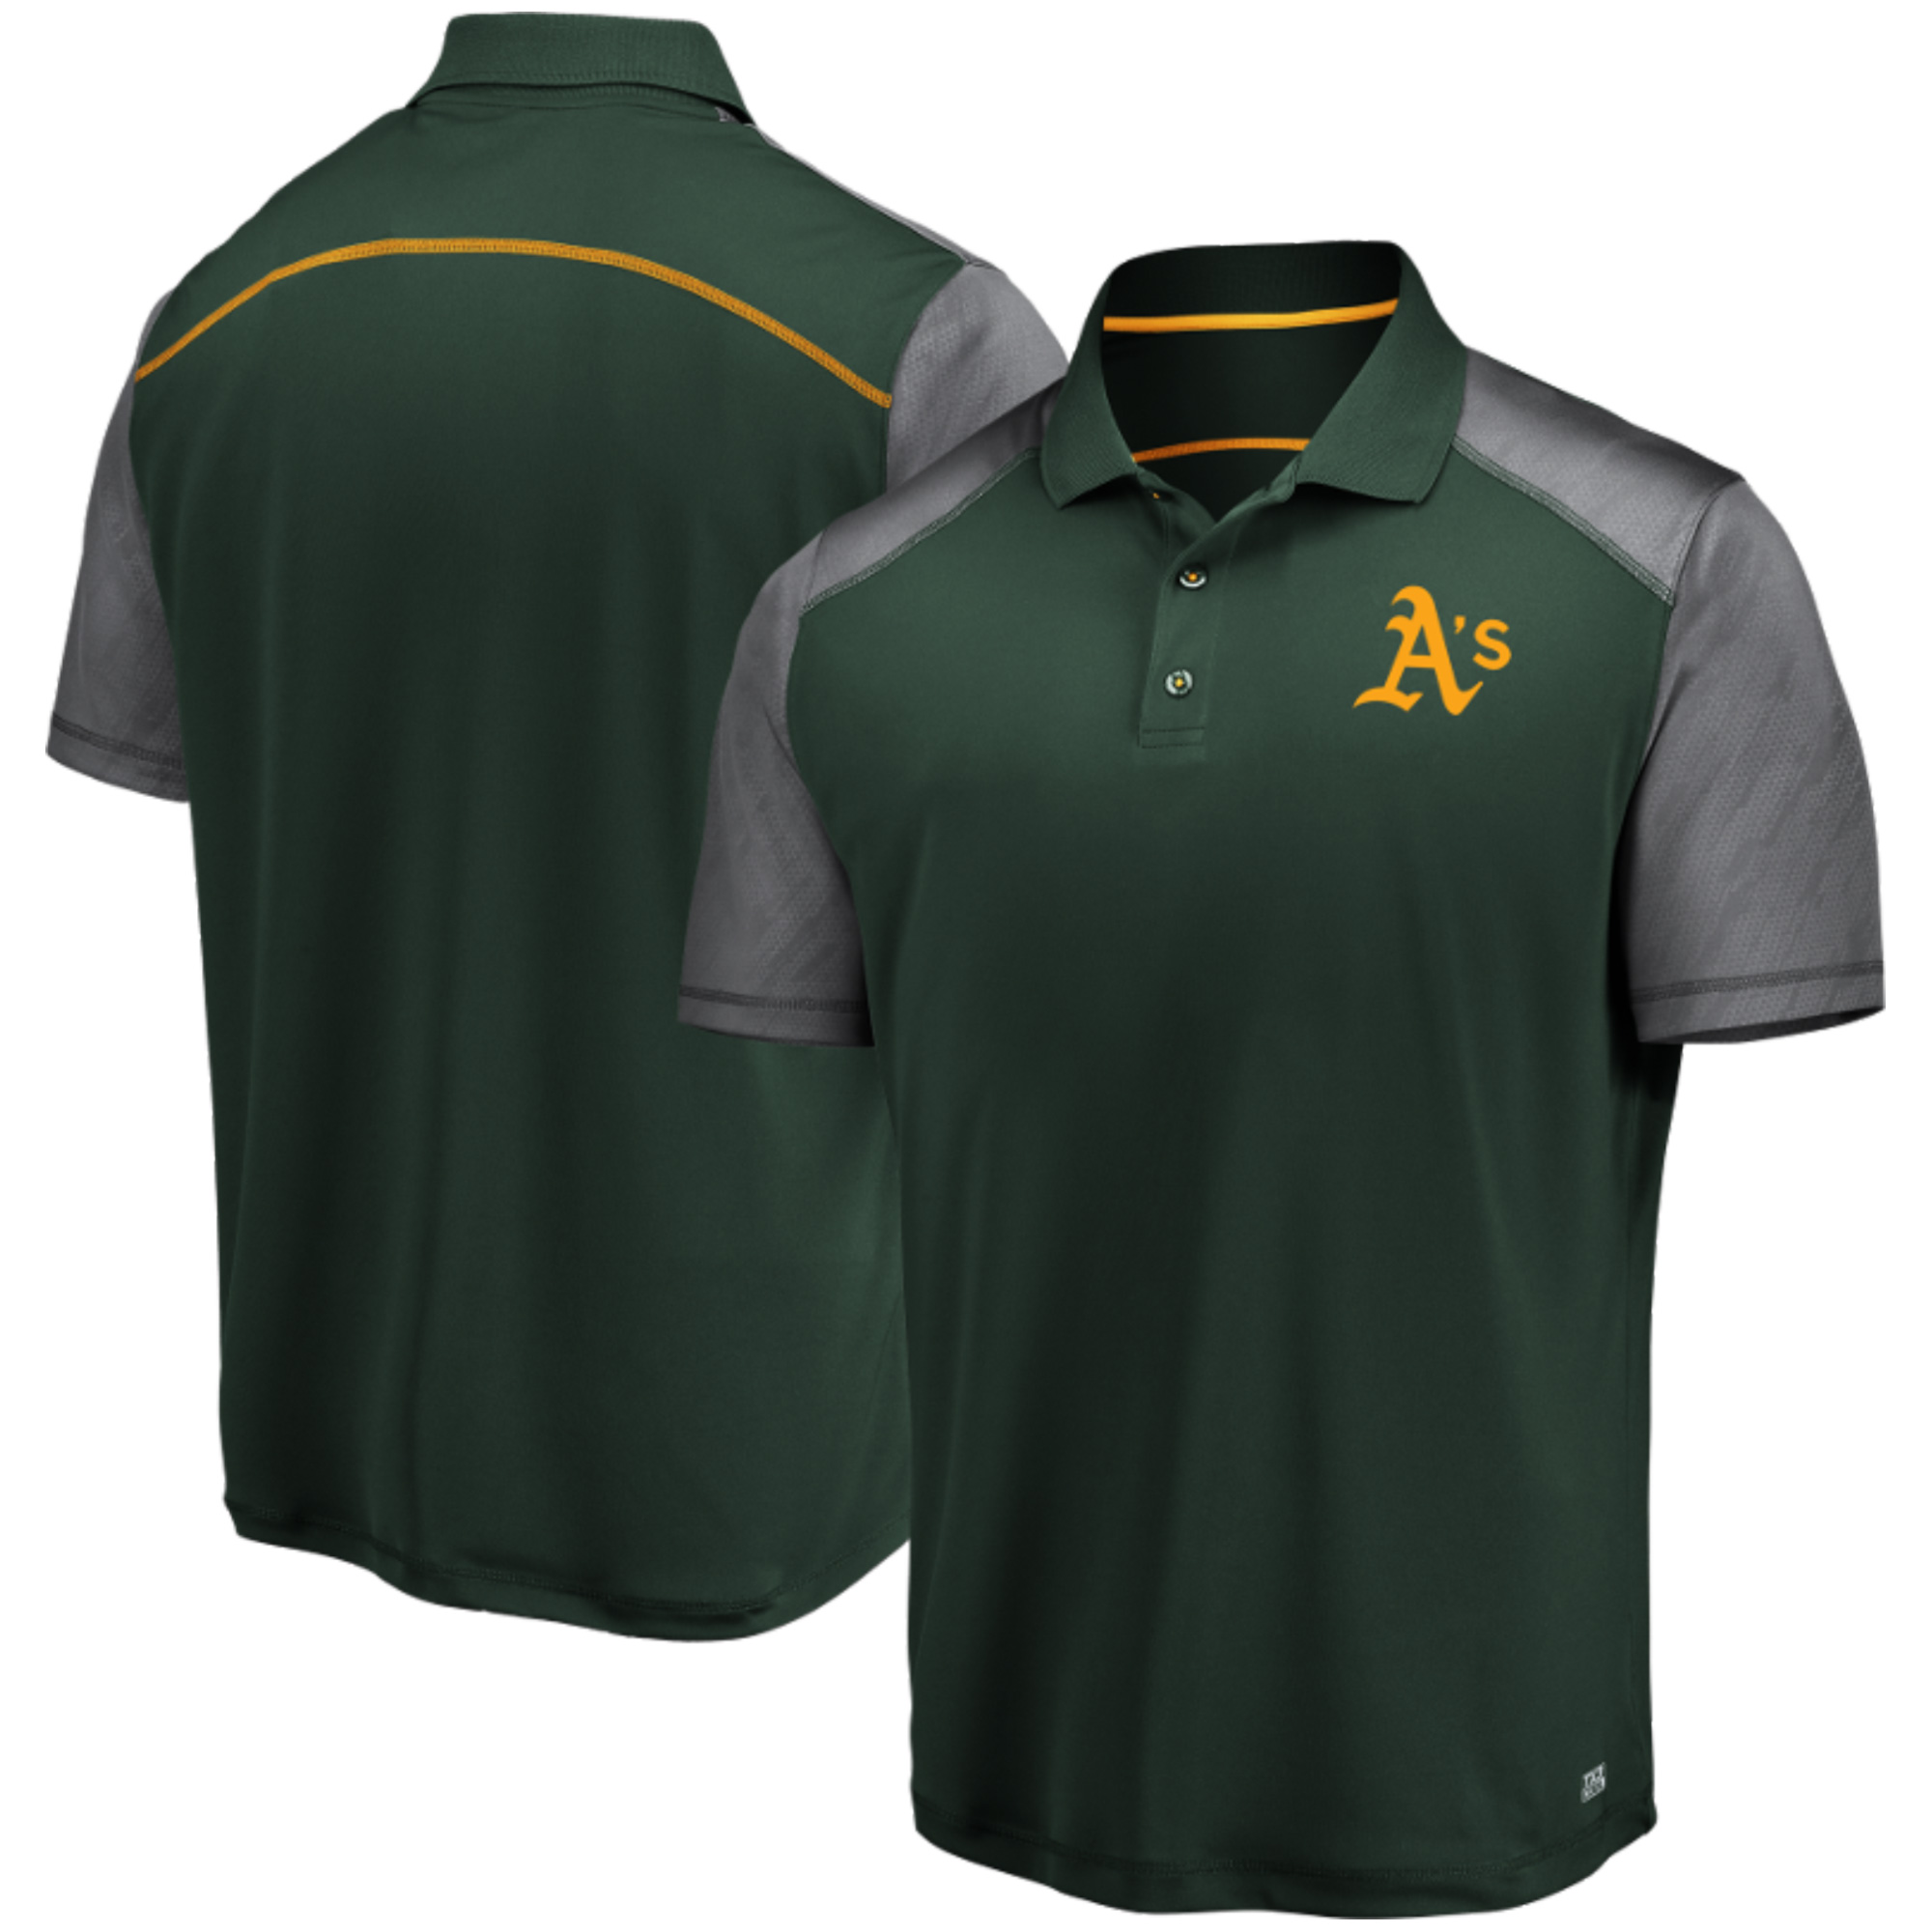 Men's Majestic Green Oakland Athletics Cool Base Polo by MAJESTIC LSG